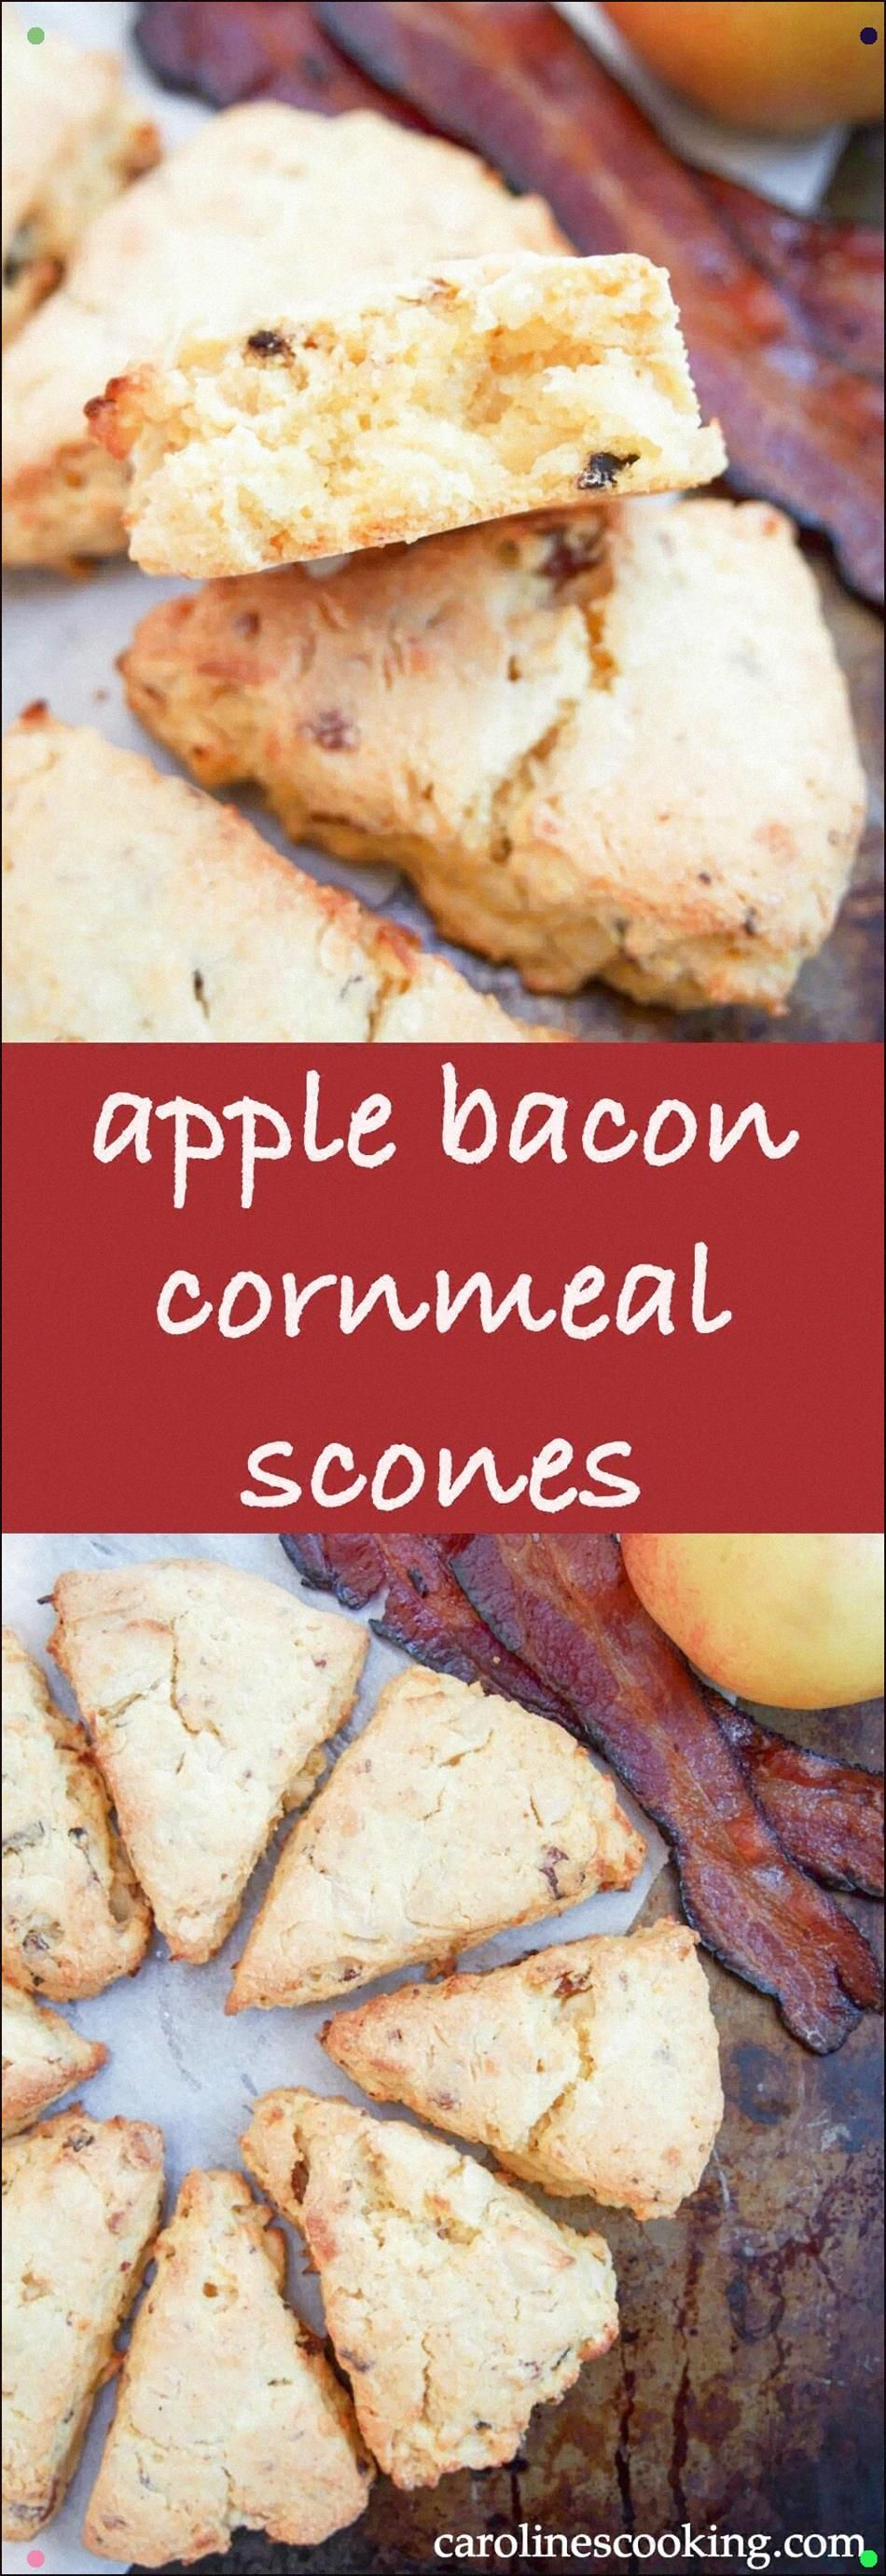 These Apple And Bacon Cornmeal Scones Are Moist And Delicious, With A Wonderful Sweet-Savory Flavor